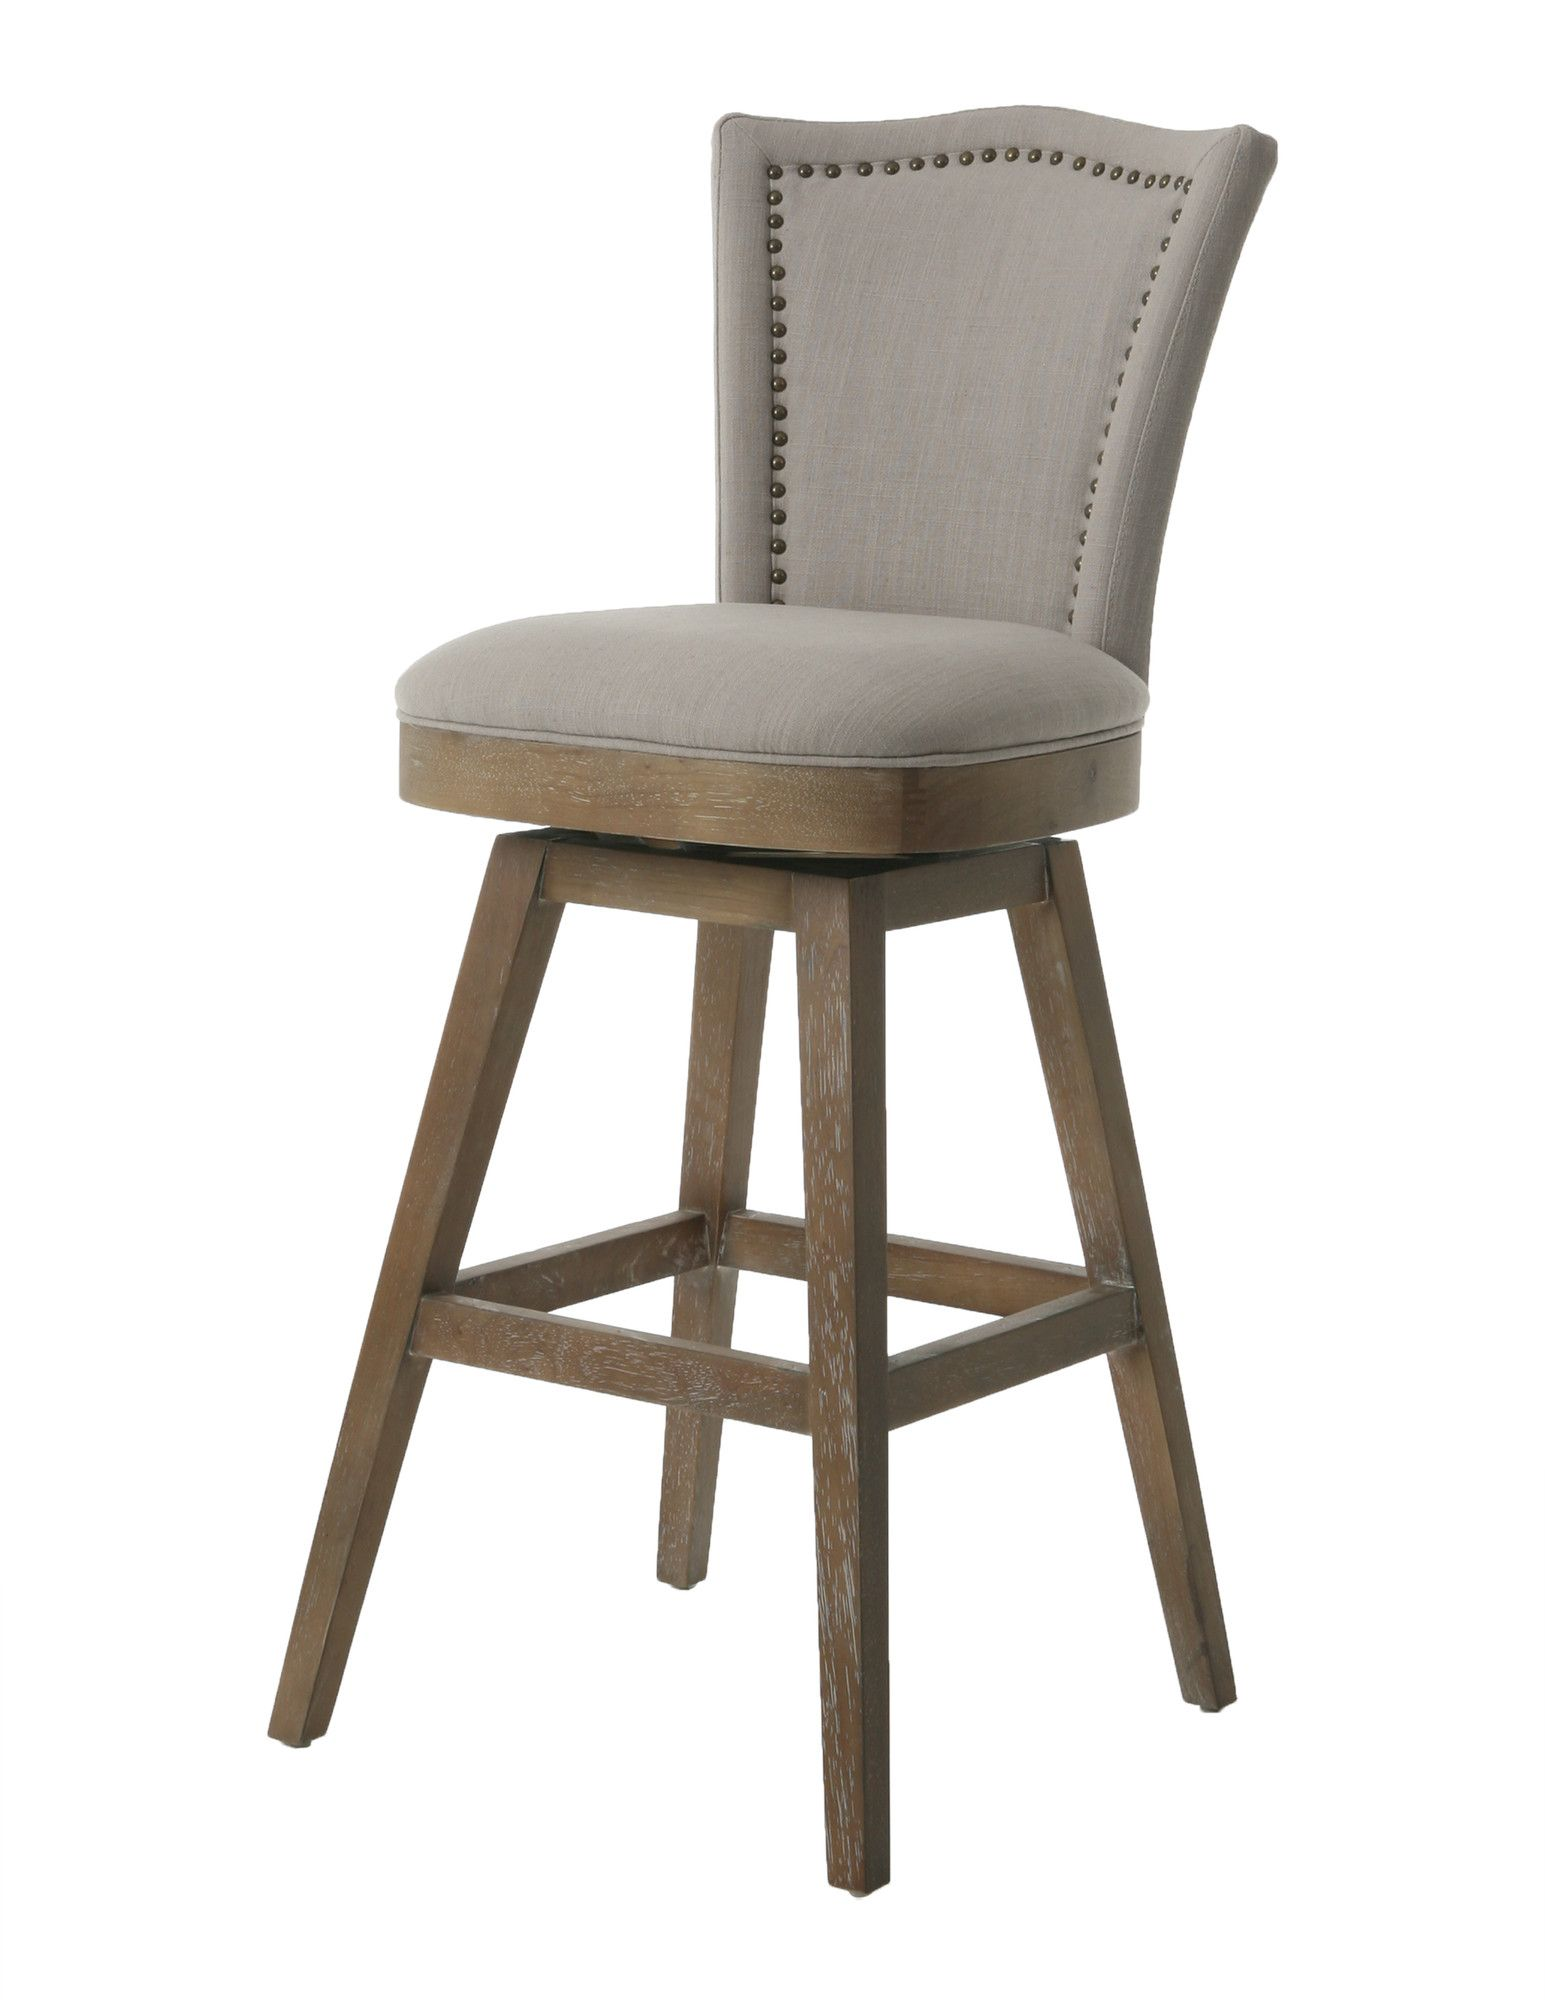 cushion inc industries extraordinary wayfair quot stools bar kitchen swivel boraam with red amp reviews stool seina